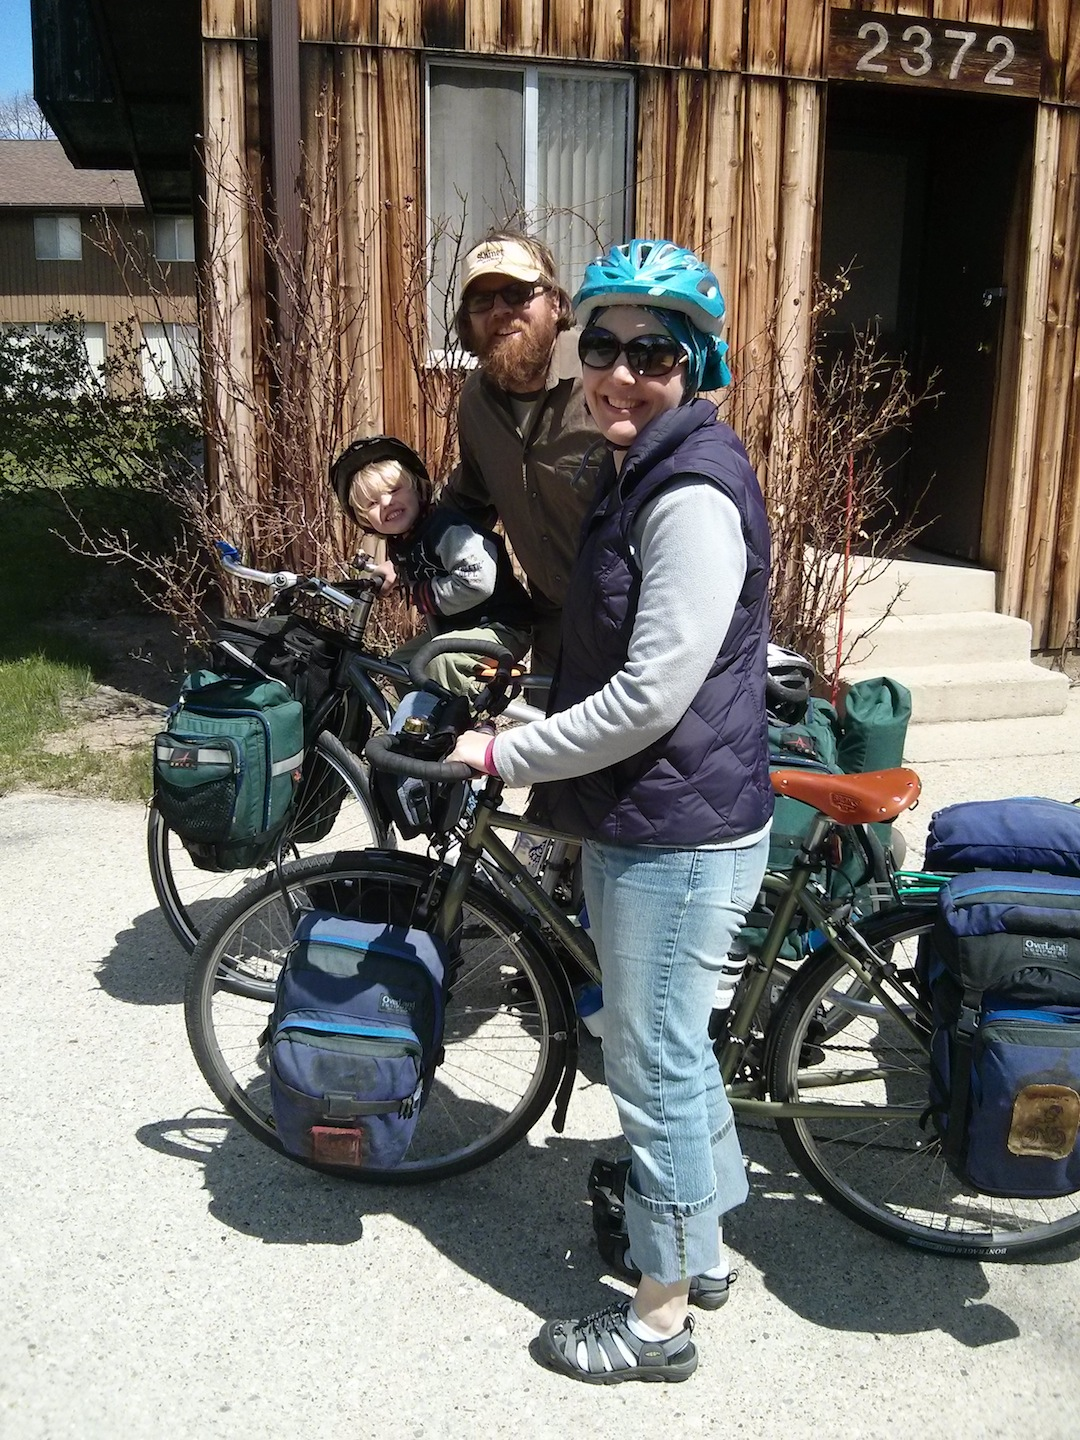 Image of Cinda, her husband, and son bike riding.